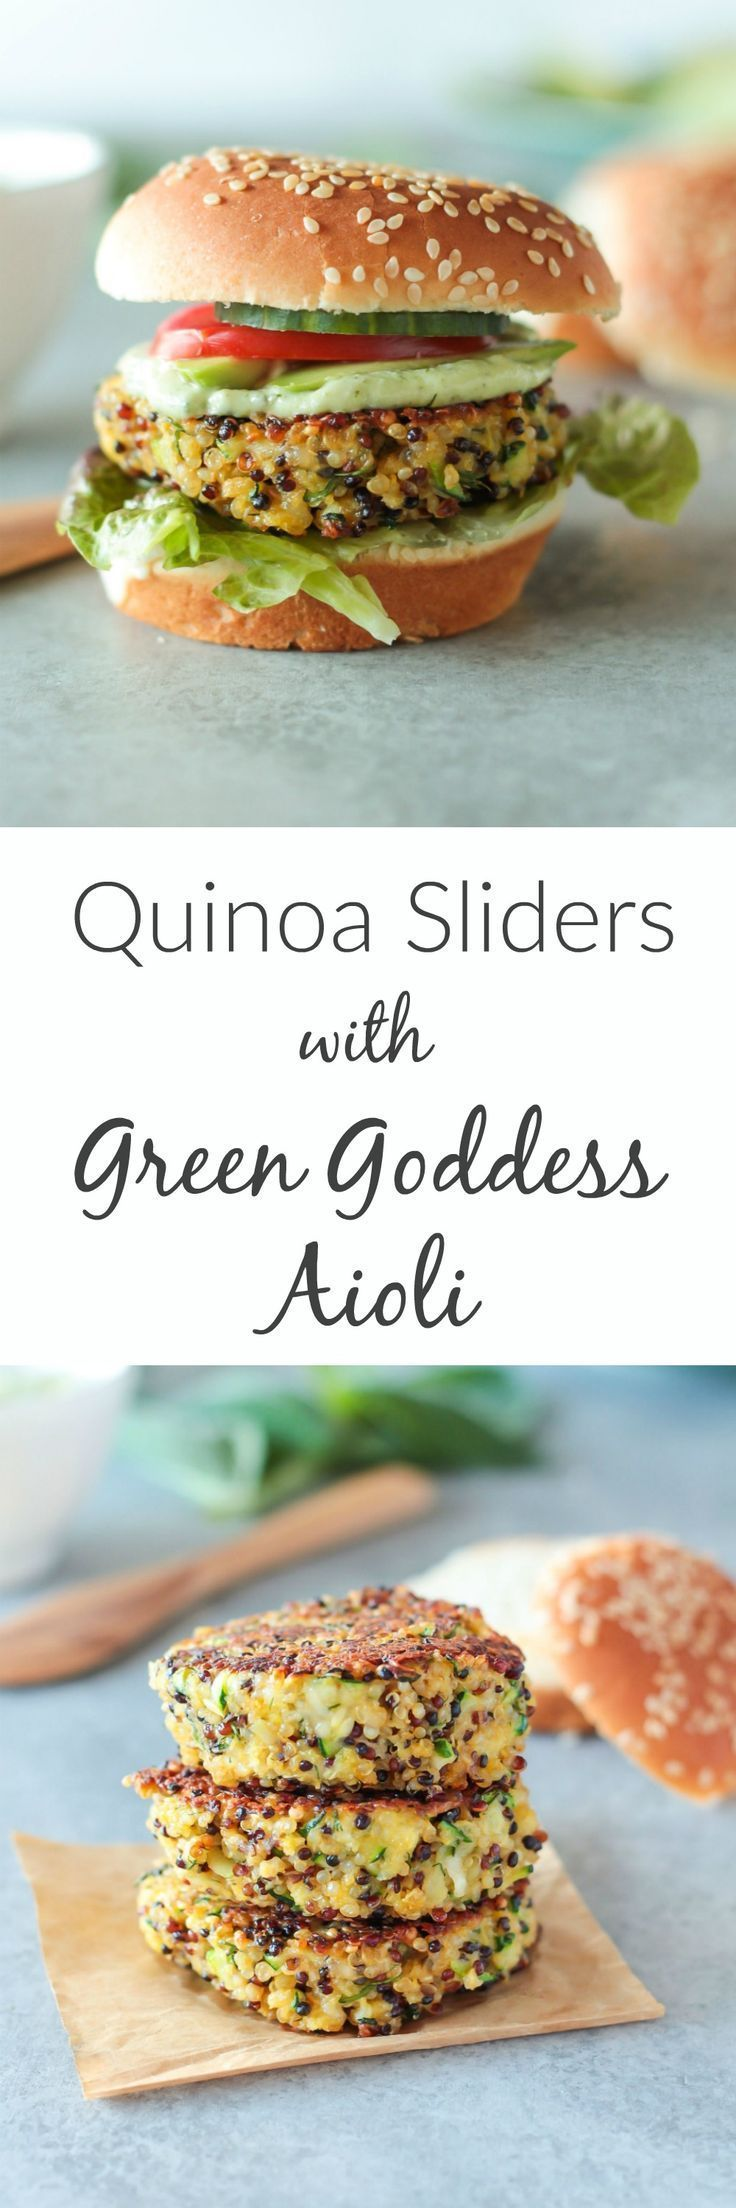 Quinoa Sliders with Green Goddess Aioli- a yummy vegetarian appetizer (or main course) for Memorial Day or any Summer cookout!